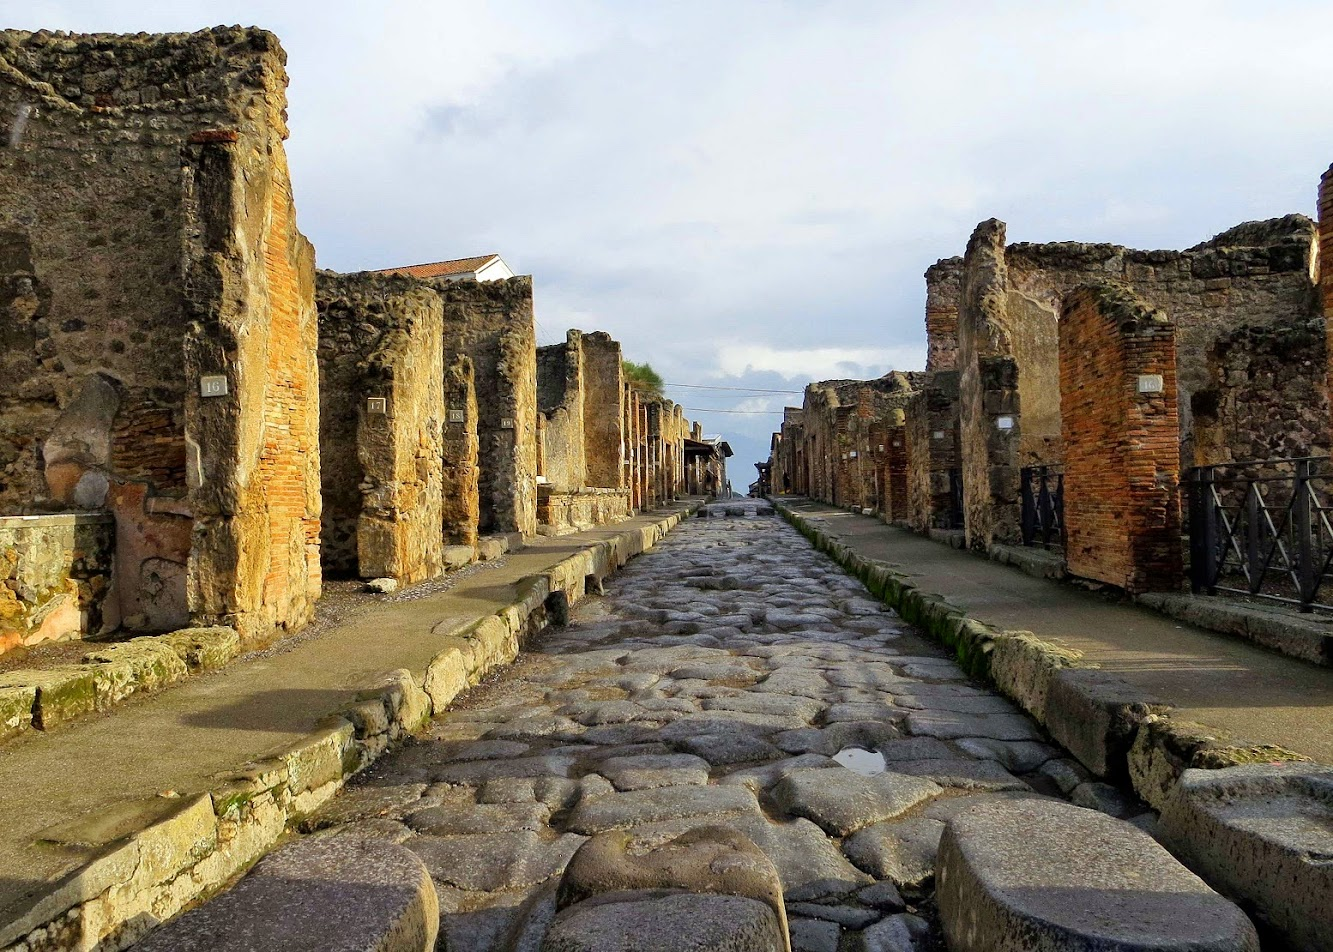 Guilty thieves return ancient objects to Pompeii